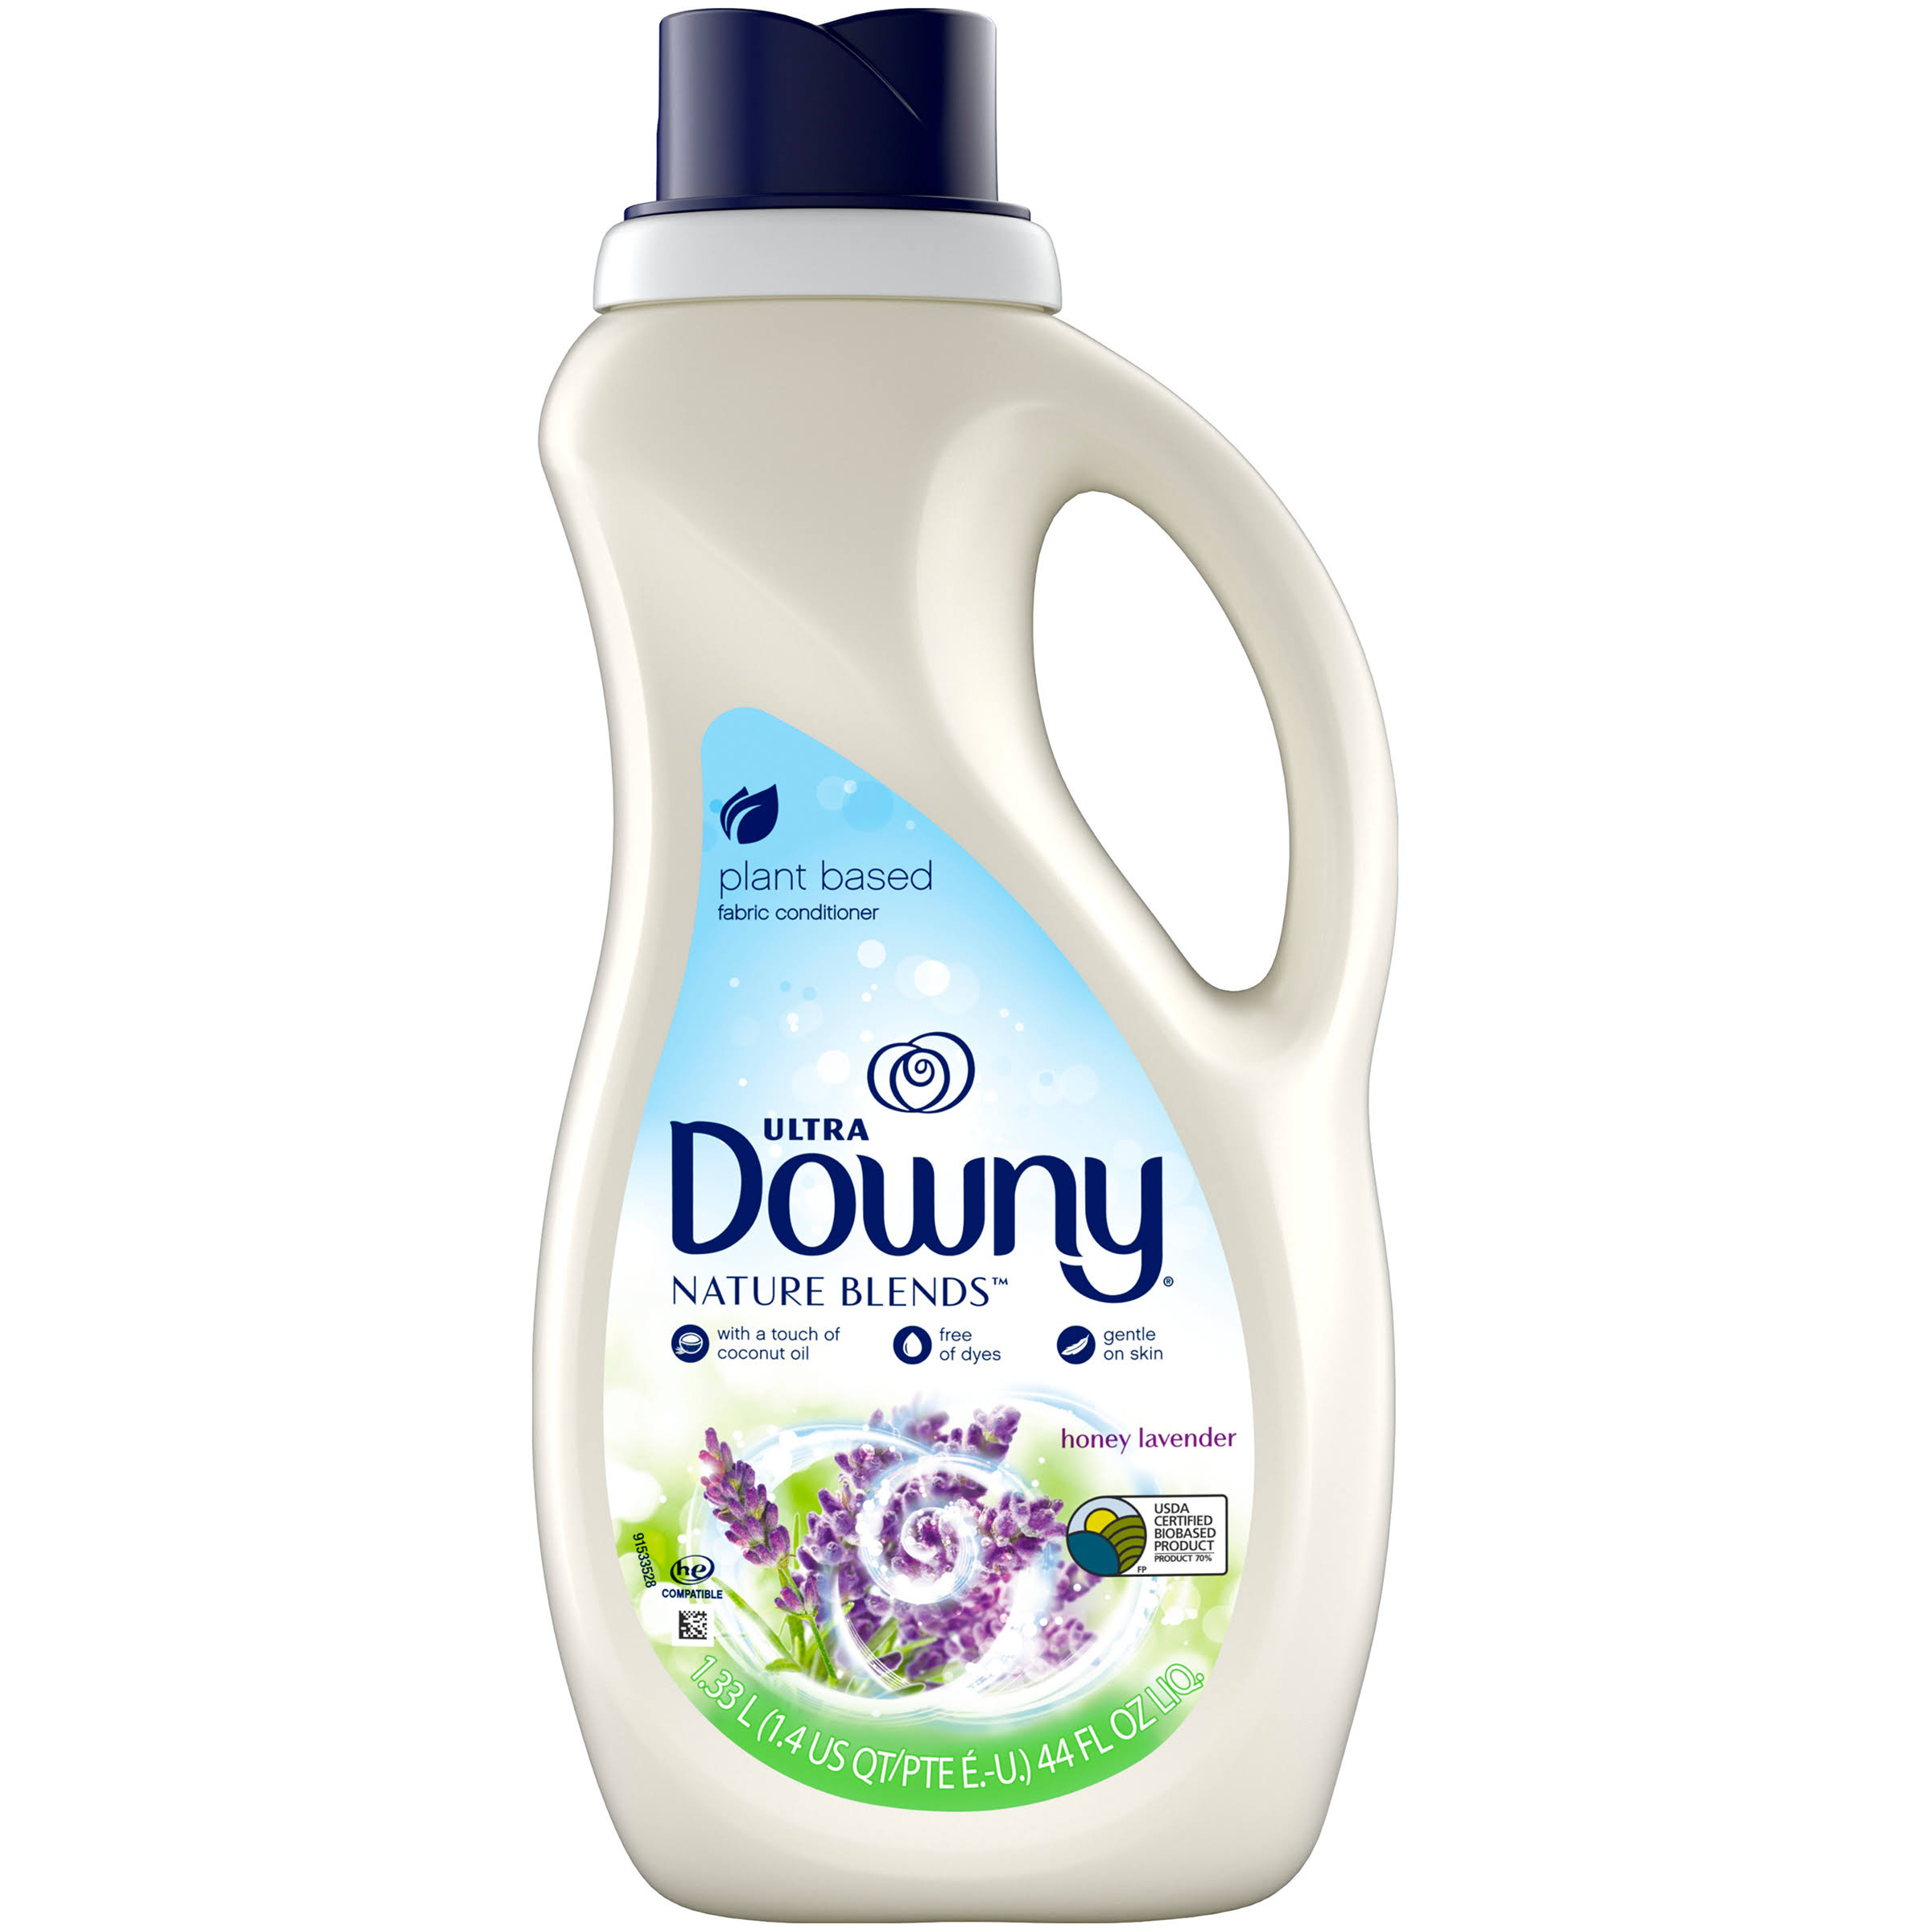 Downy Nature Blends Liquid Fabric Conditioner